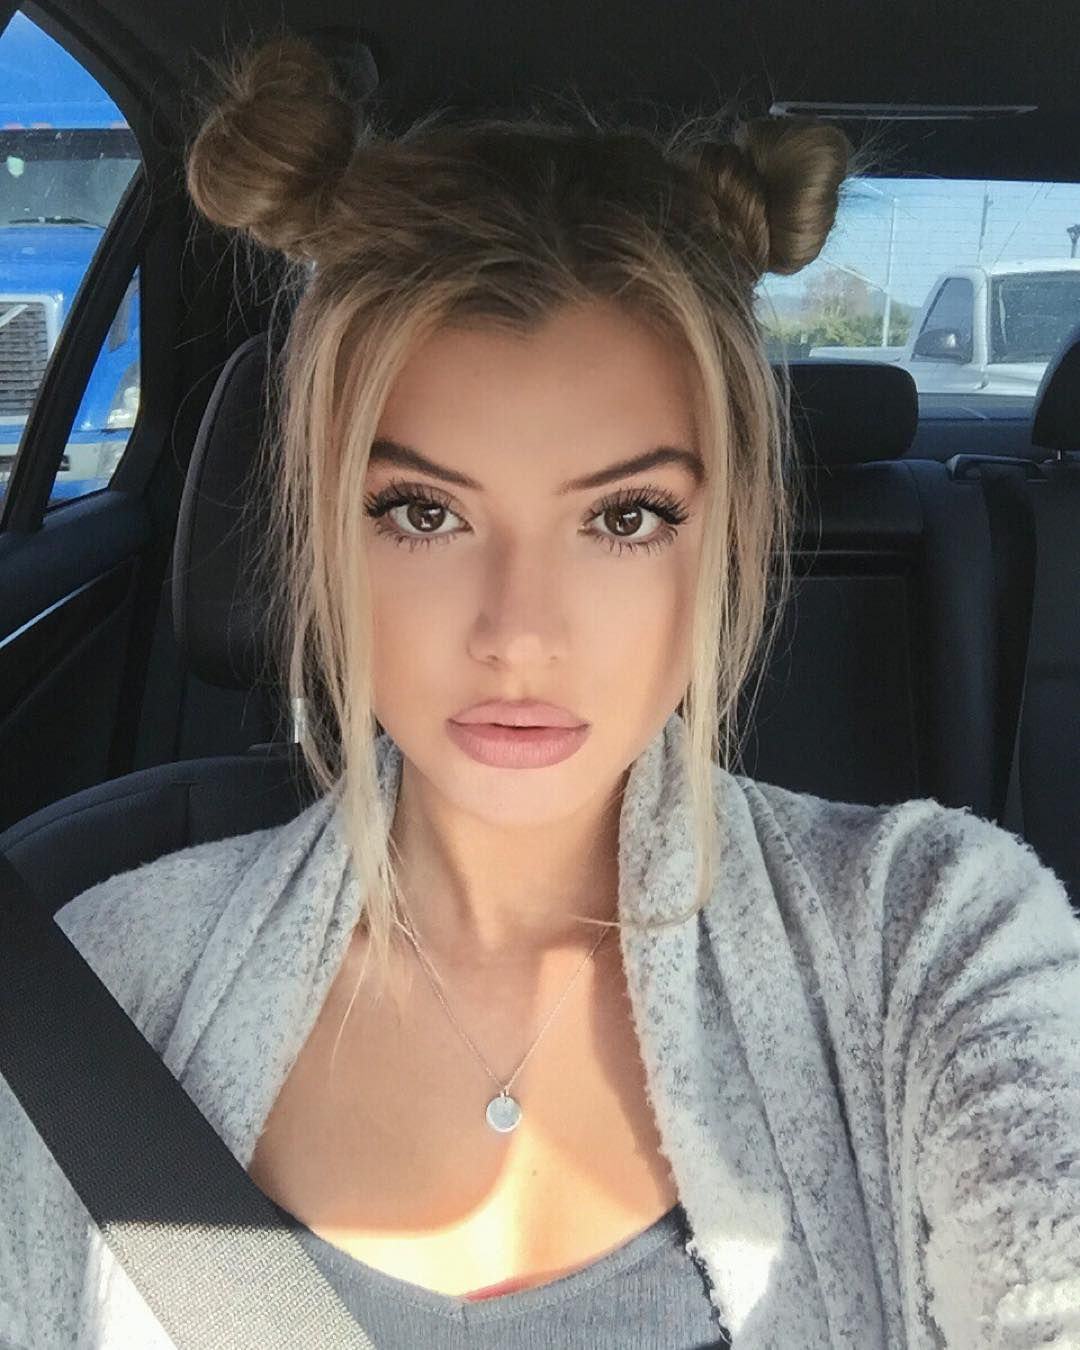 Fc Alissa Violet Hello I M Daisy I Love To Dress Up And Cuddle I M Also Looking For A